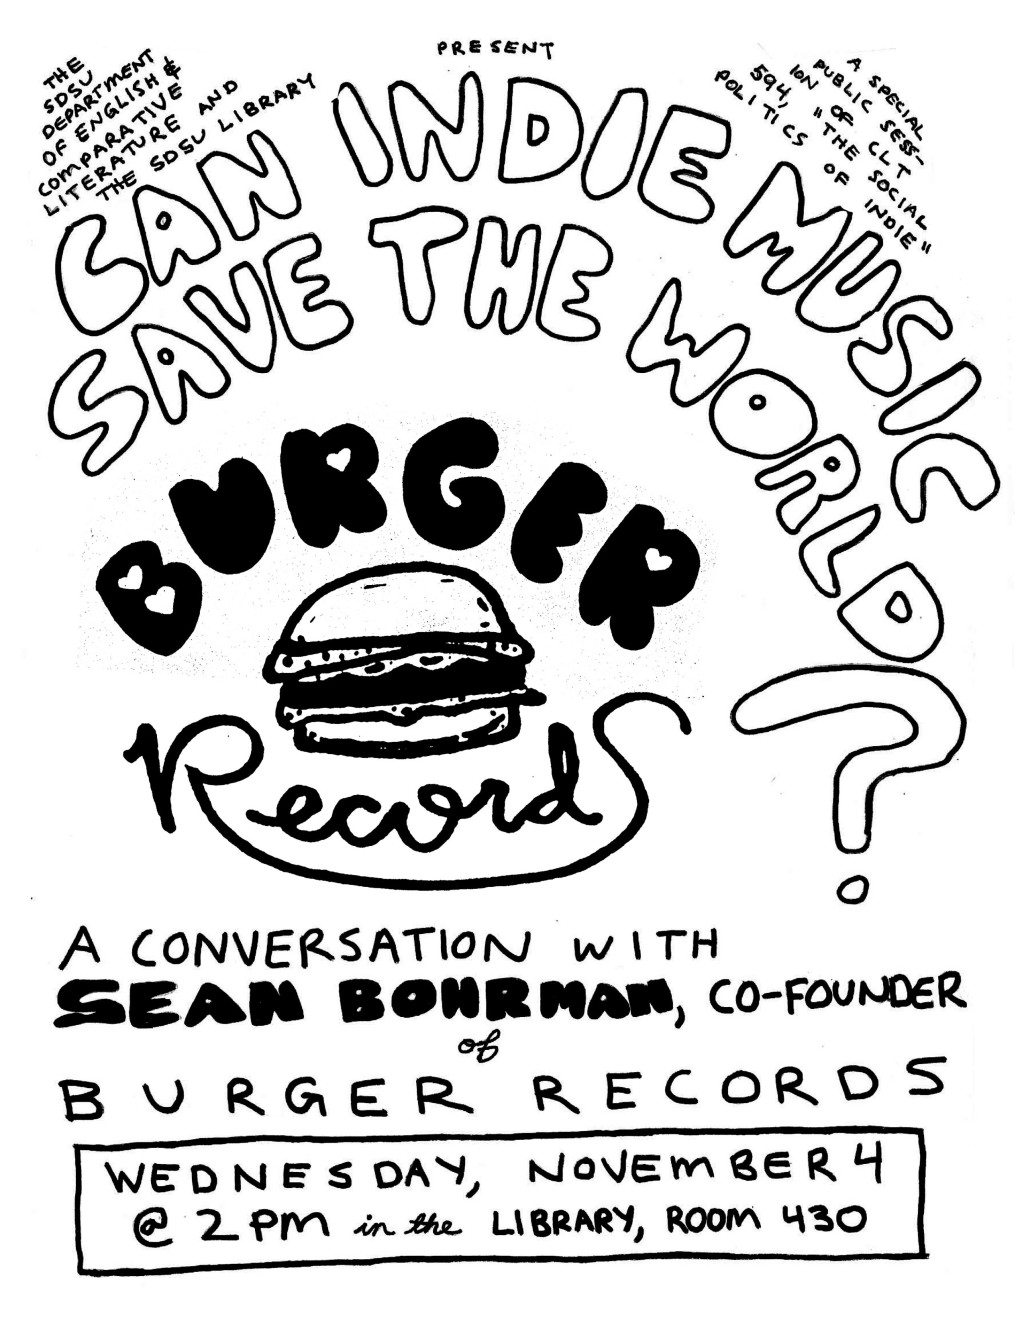 Can Indie Music Save the World? A Conversation with Sean Bohrman of Burger Records